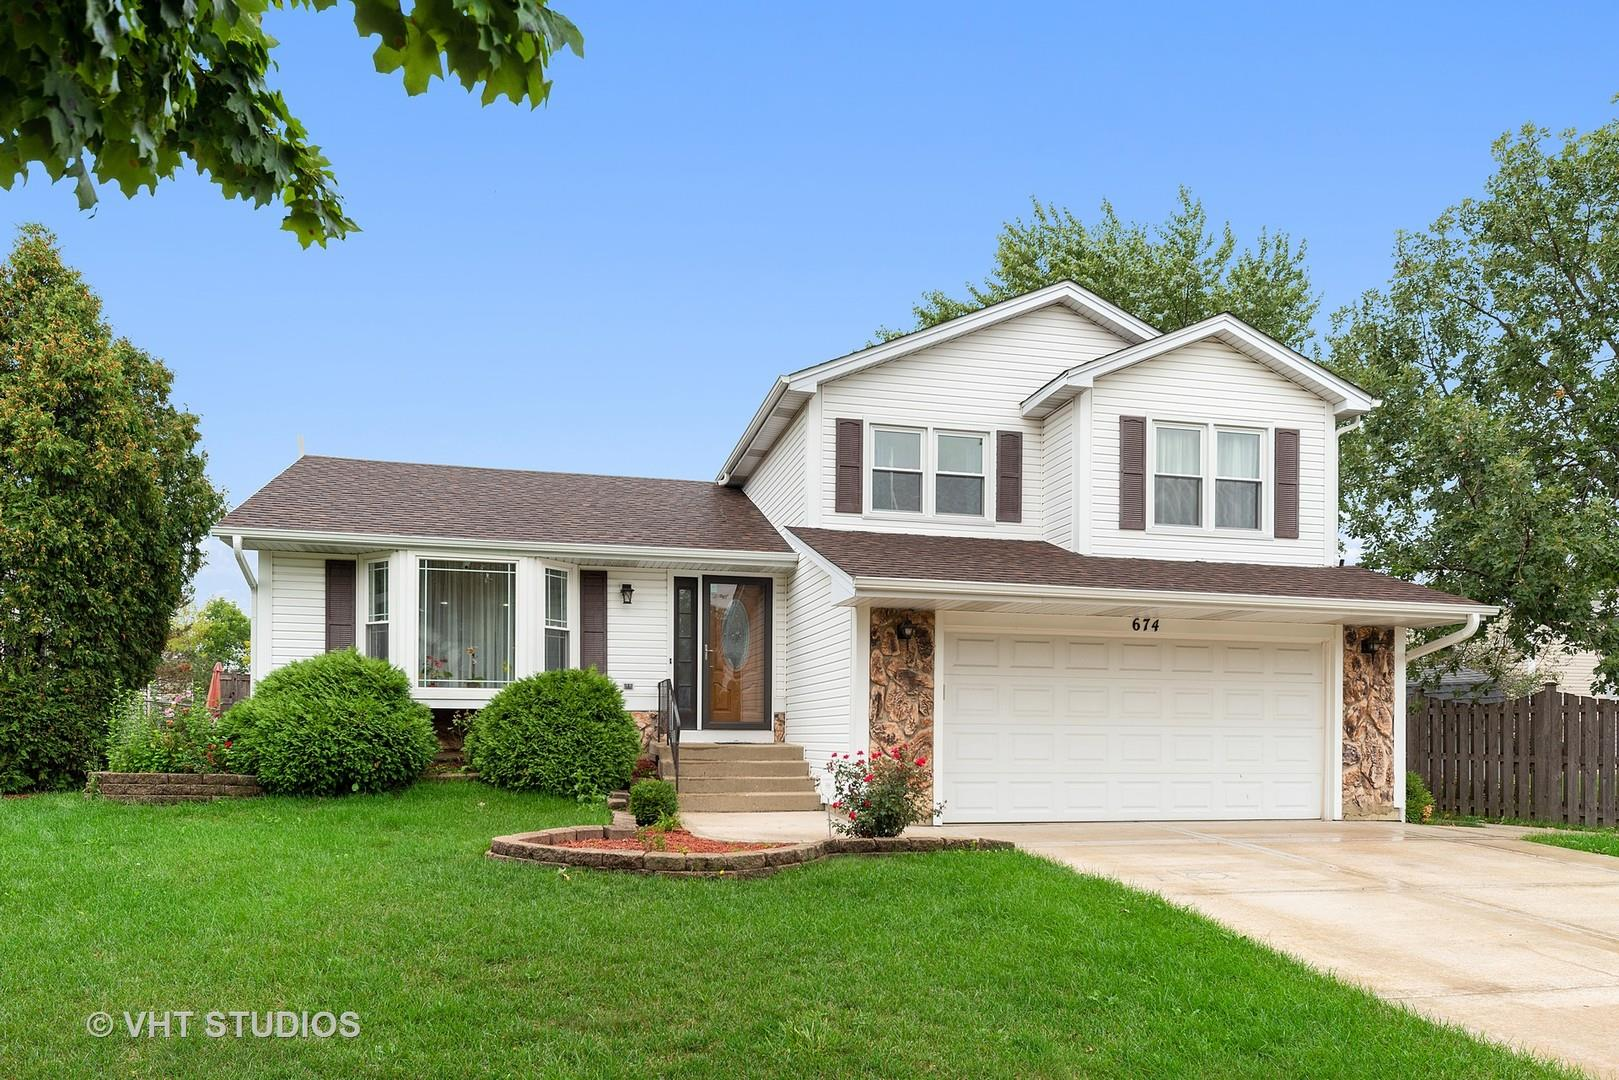 674 Schooner Lane, Elk Grove Village, IL 60007 - #: 10854636